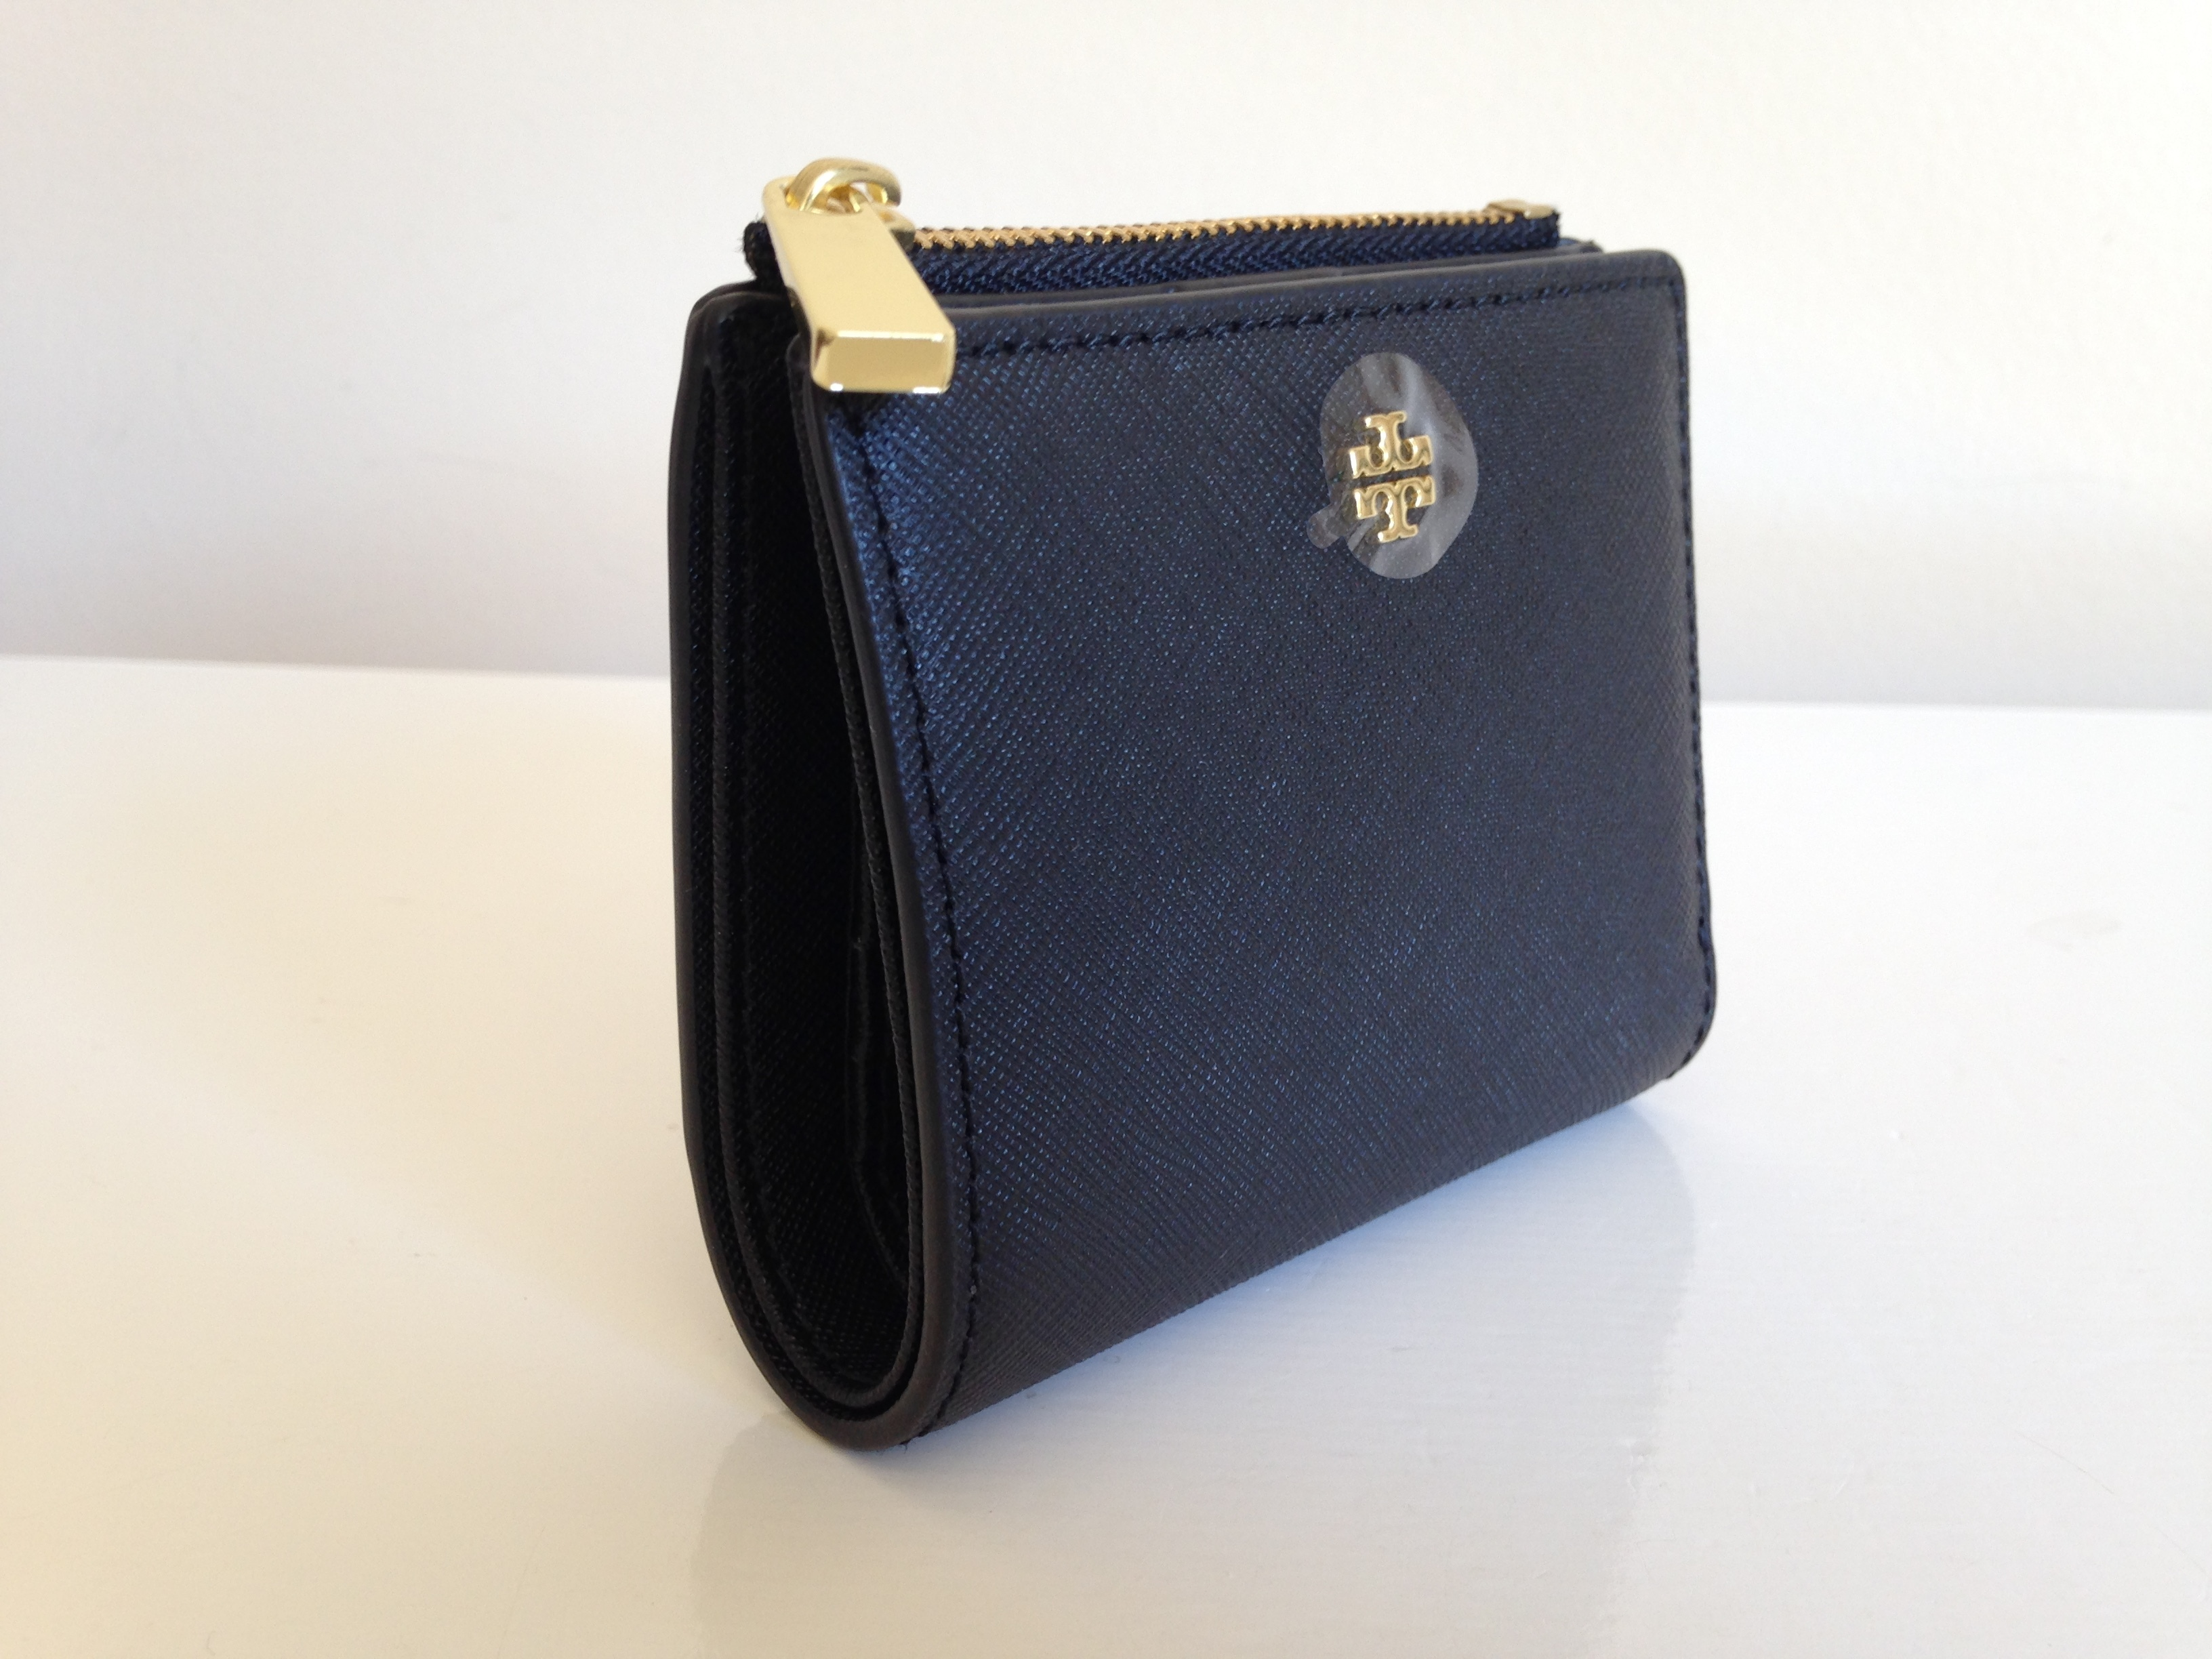 TORY BURCH EMERSON MINI WALLET セール 即発送